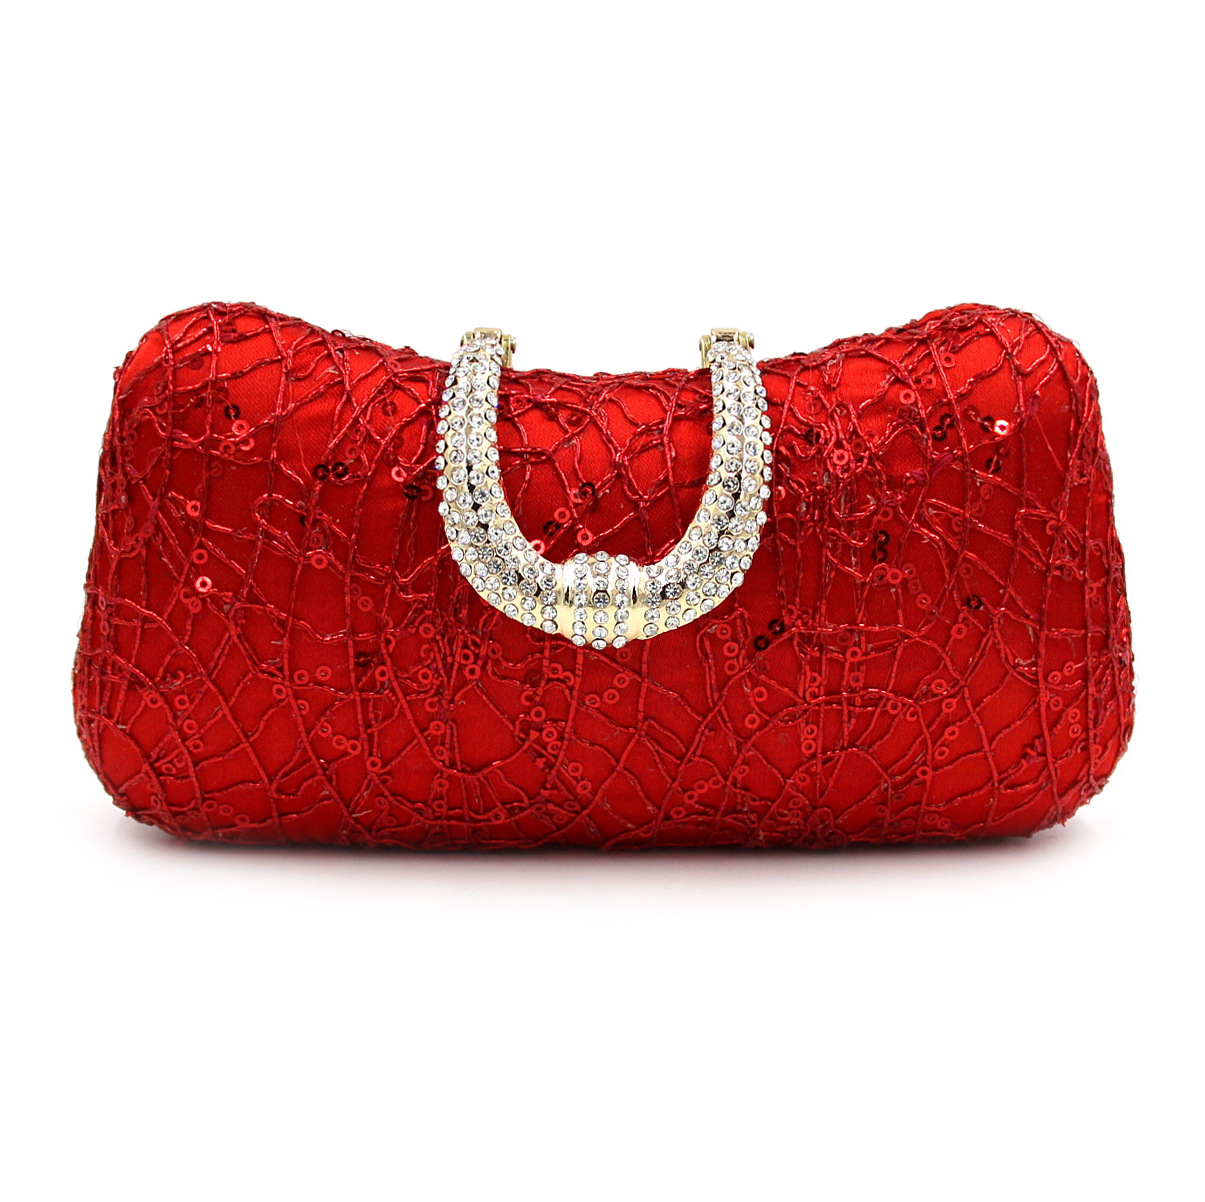 2017 Women Bags Diamond Evening Party Clutches Purses Box Package High-end Fashion Ladies Evening Bags For Wedding Dress Bag